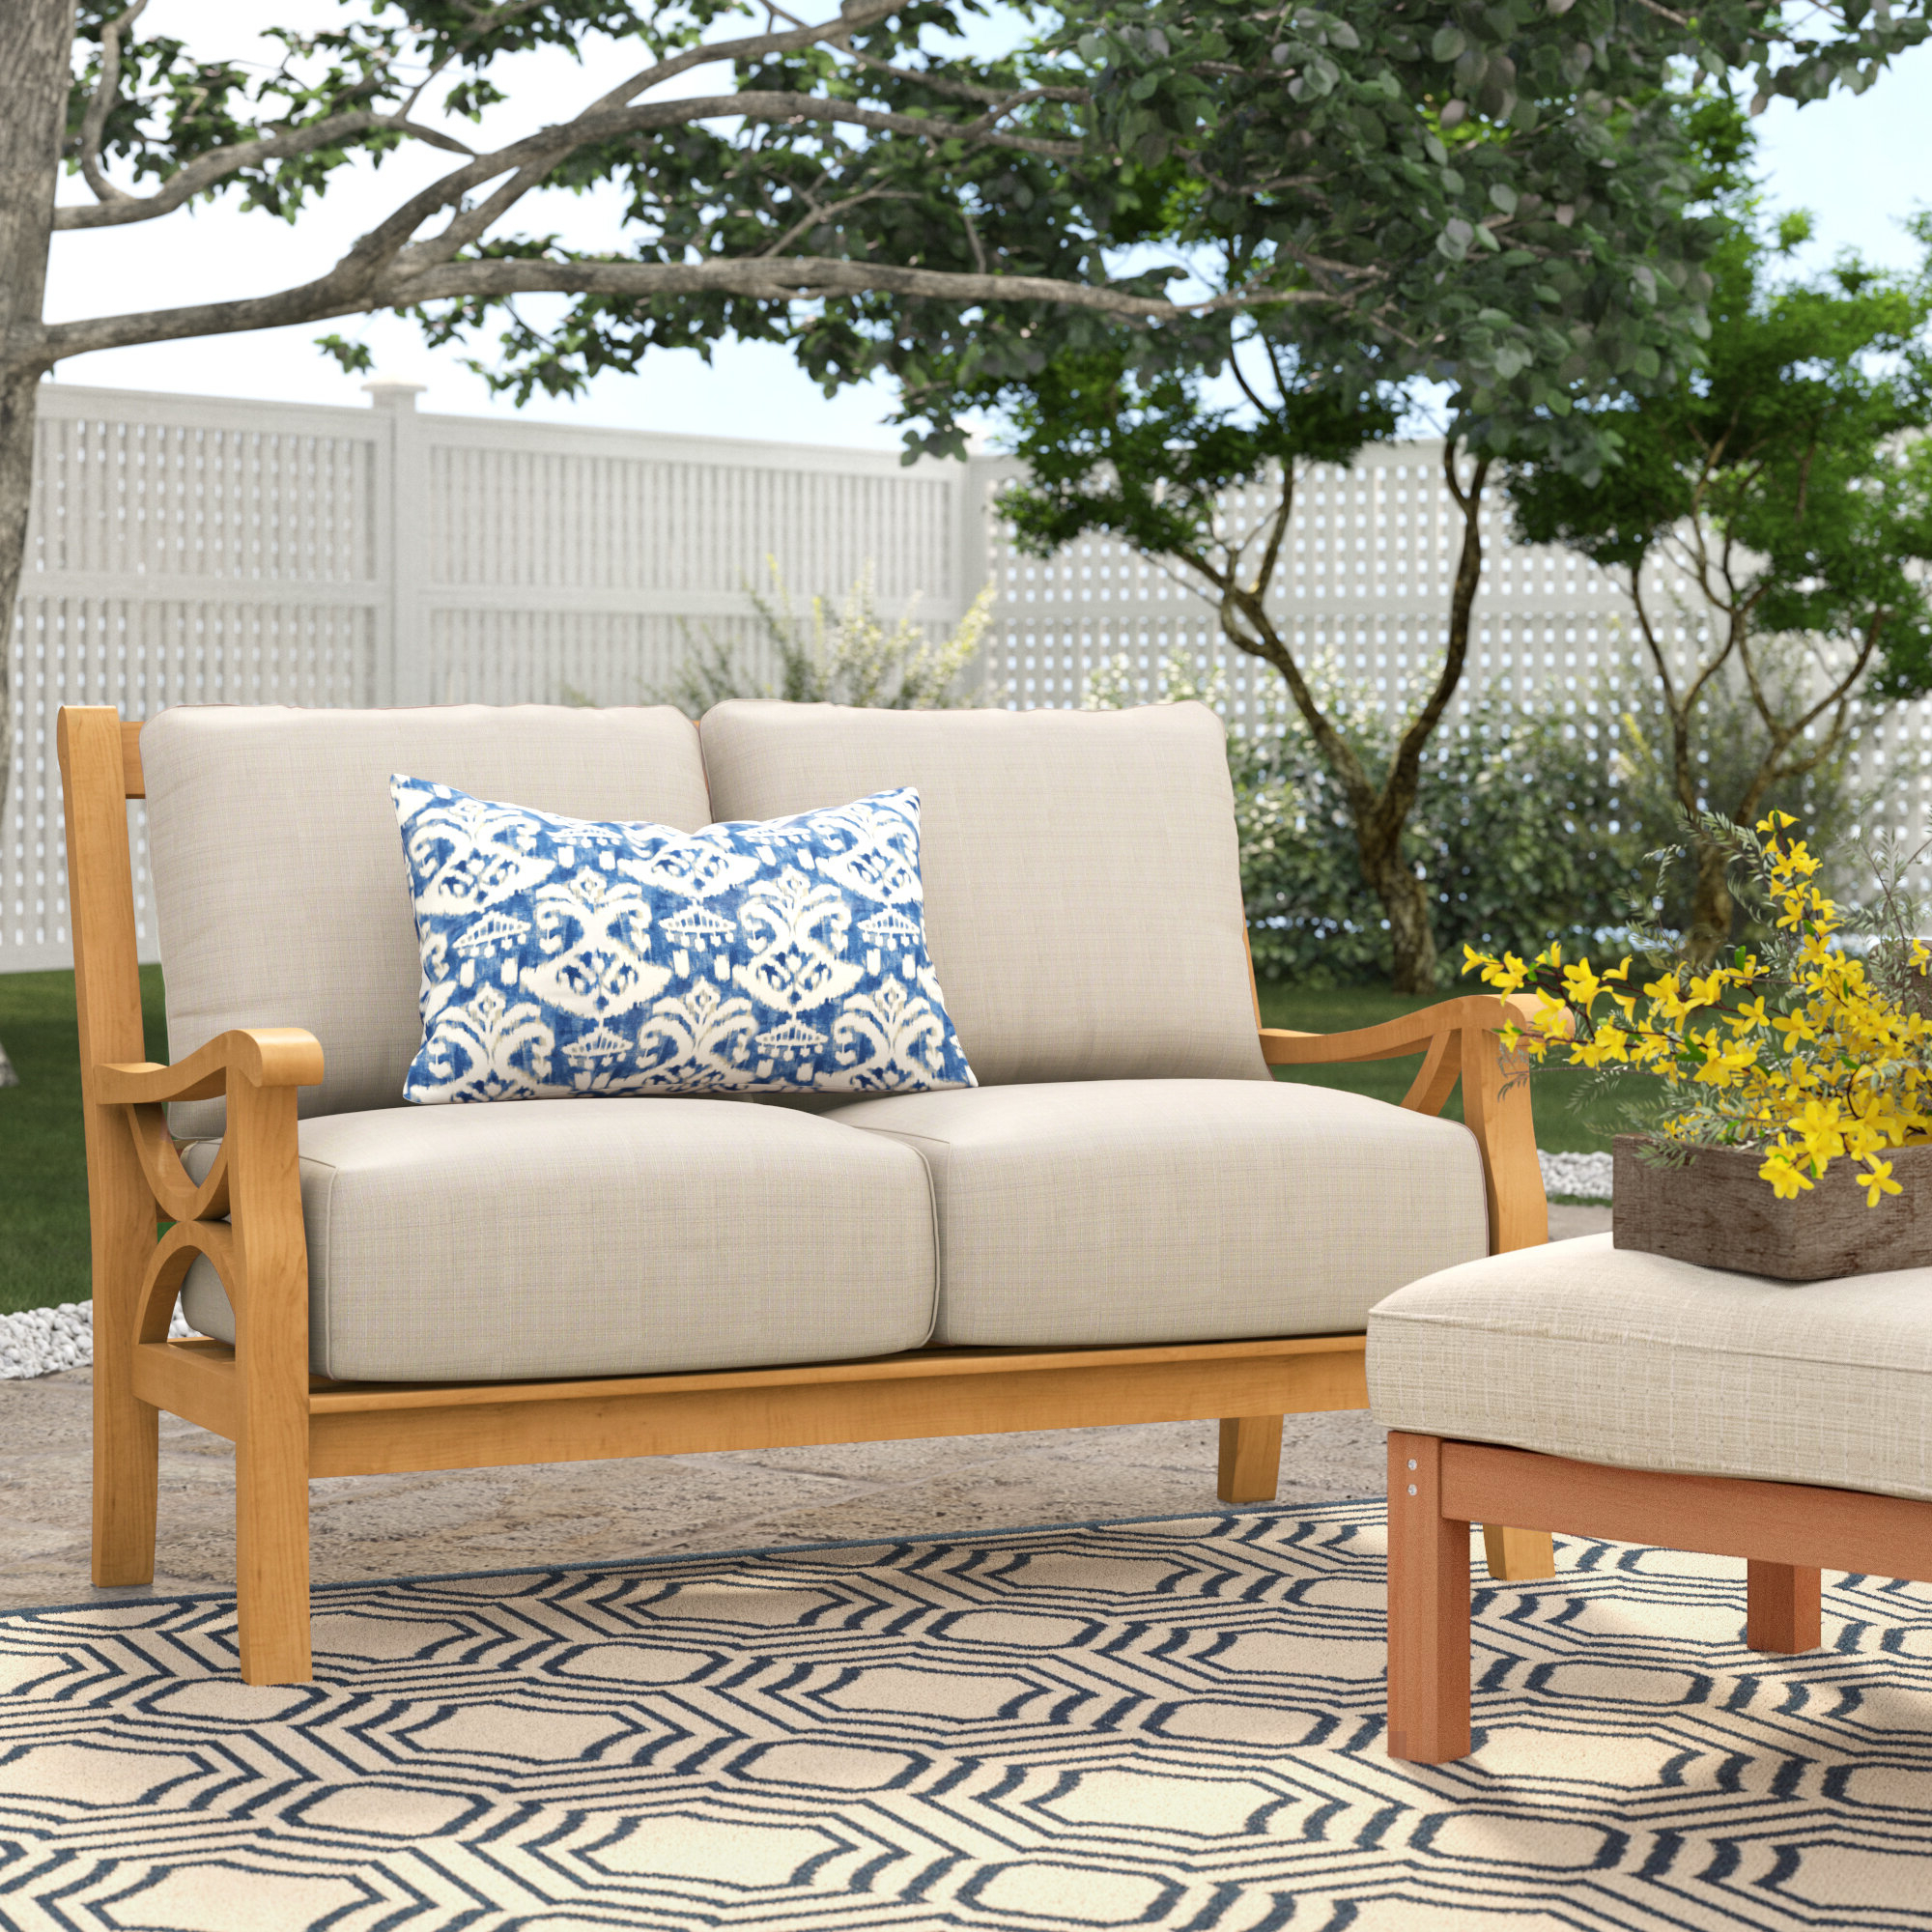 Well Liked Brunswick Teak Loveseat With Cushions Regarding Englewood Loveseats With Cushions (View 6 of 20)